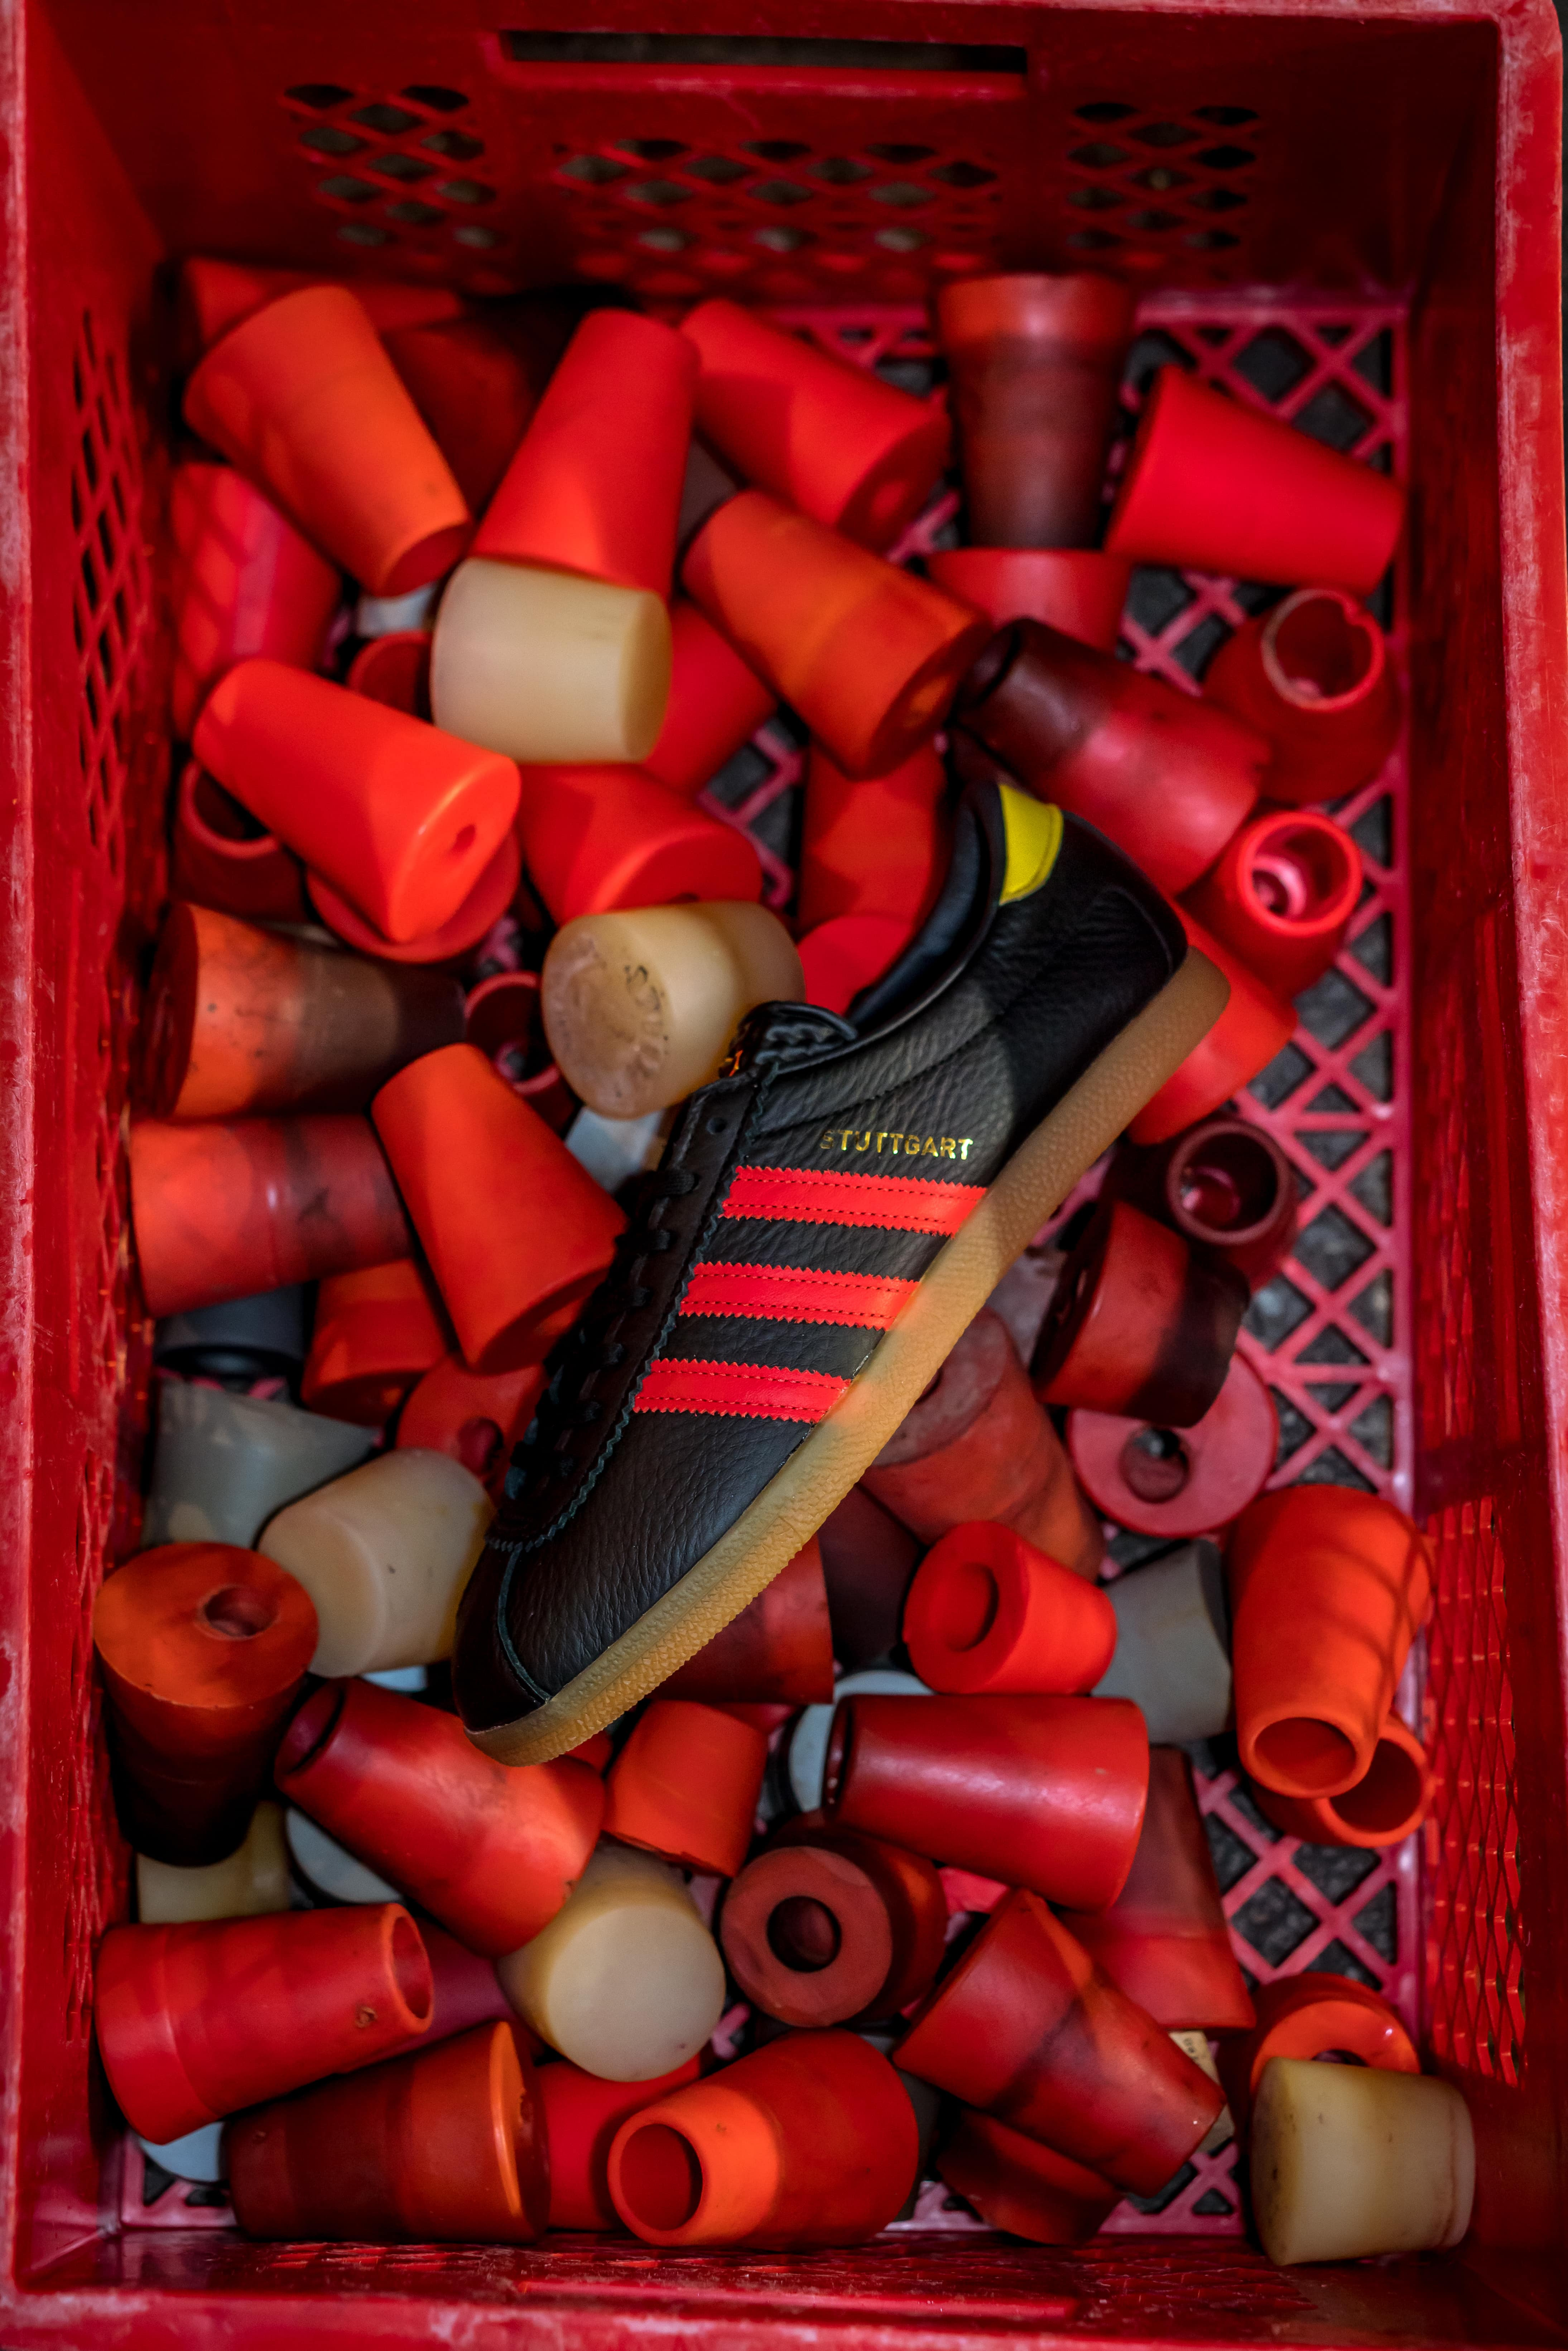 We're off to Stuttgart for our next adidas Originals Anniversary City Series release